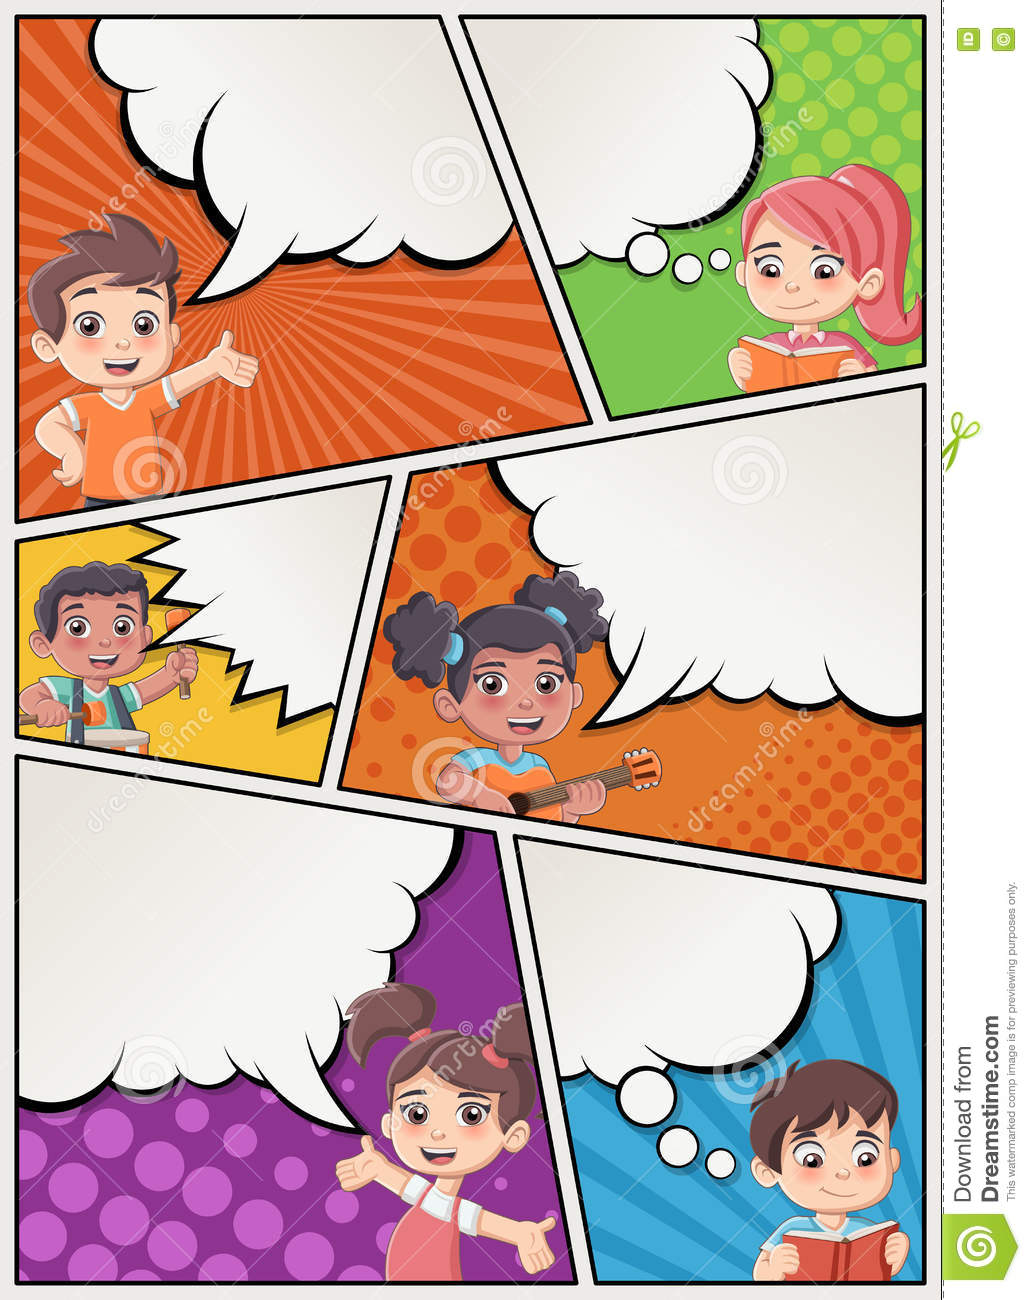 Comic Book Page With Children Talking Stock Vector